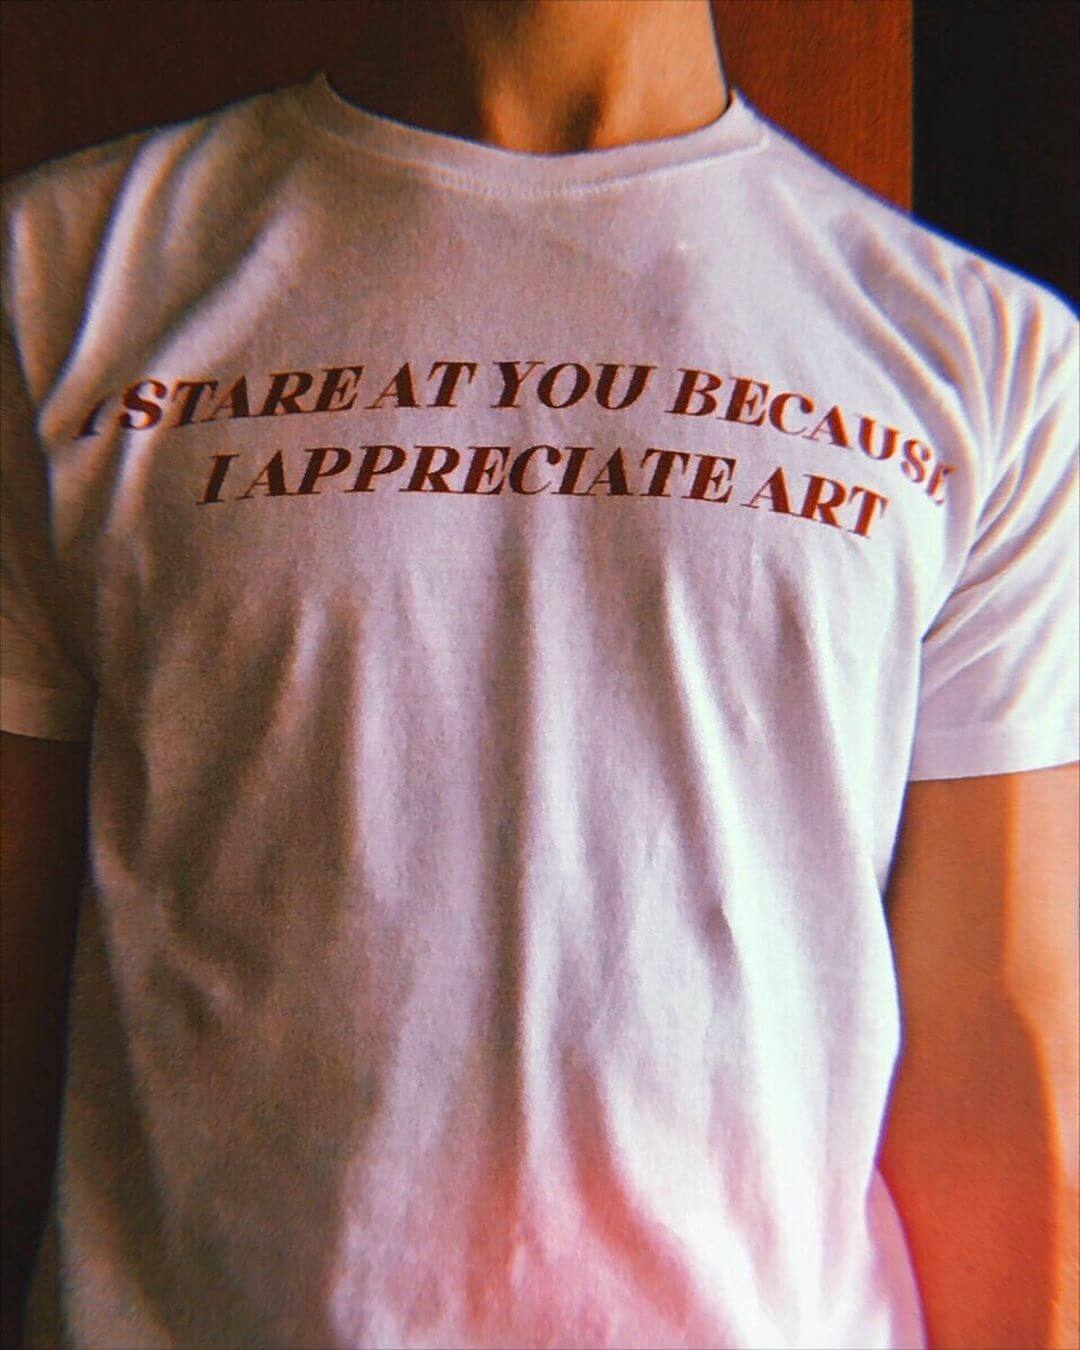 I STARE AT YOU BECAUSE I APPRECIATE ART TEE-Cosmique Studio